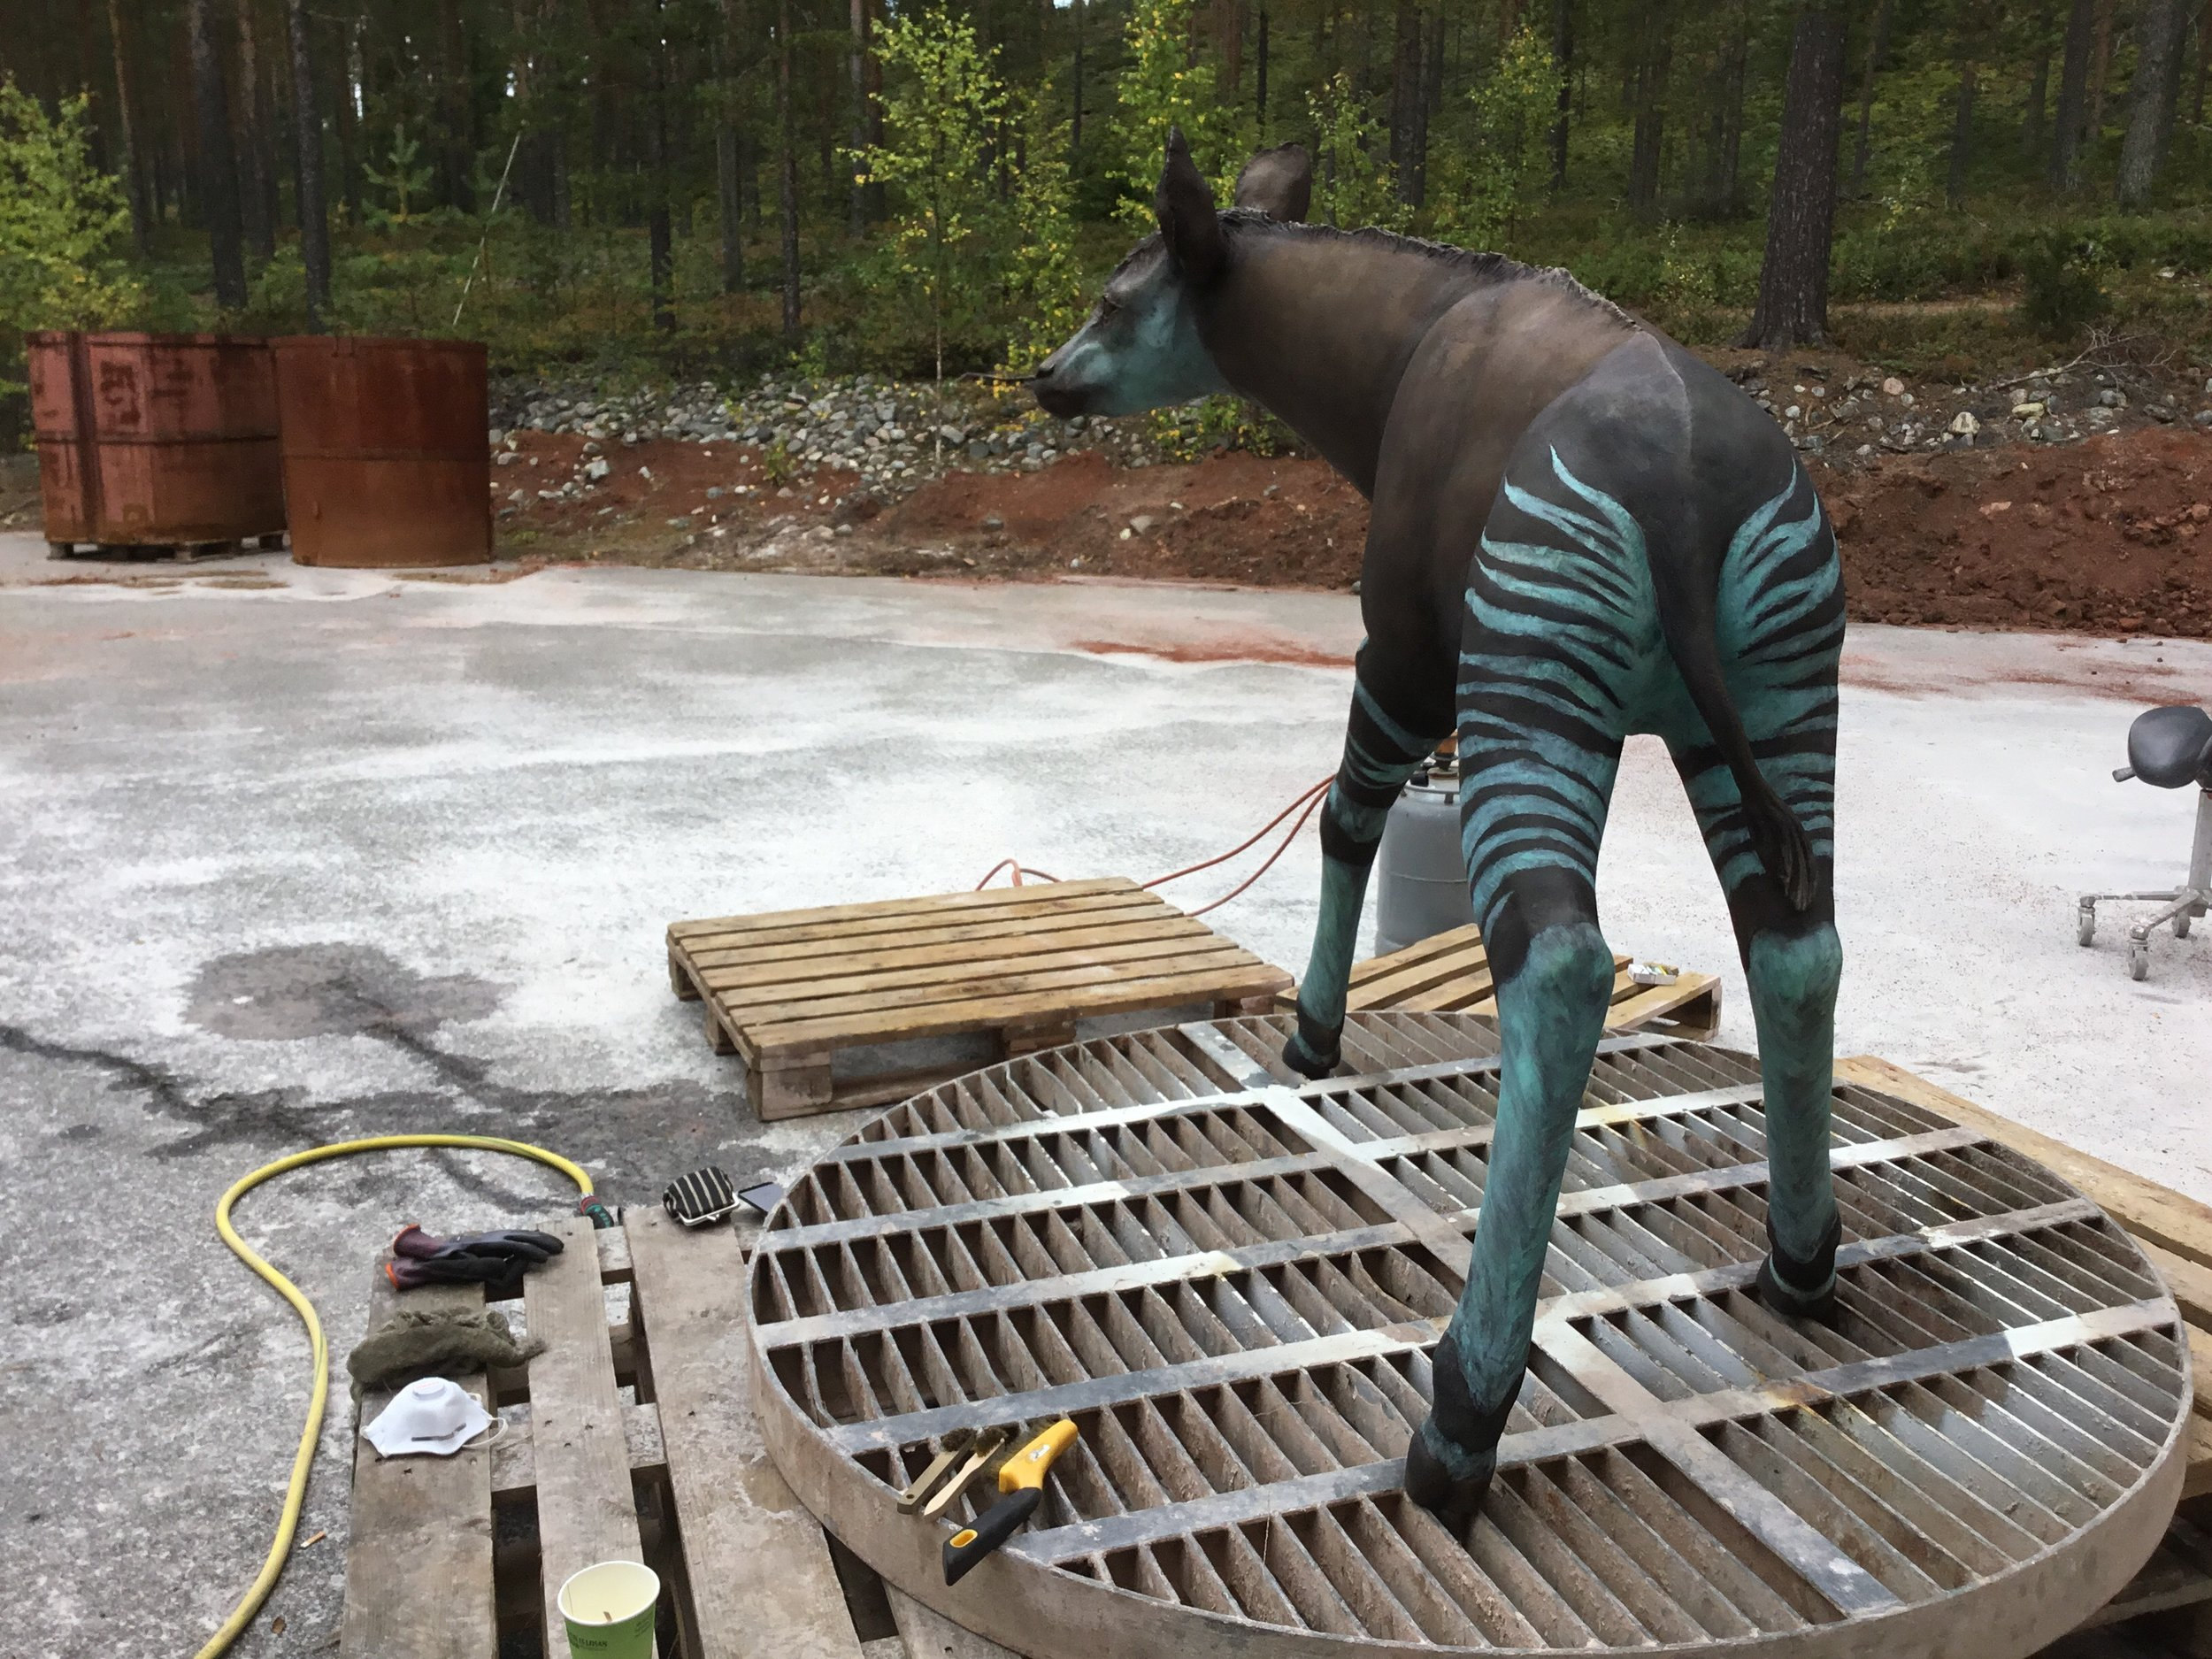 The sculpture at the foundry before installation. P.S. In nature, baby okapis manage to follow their mother by following her striped behind. Photo:  Lotta Mattila